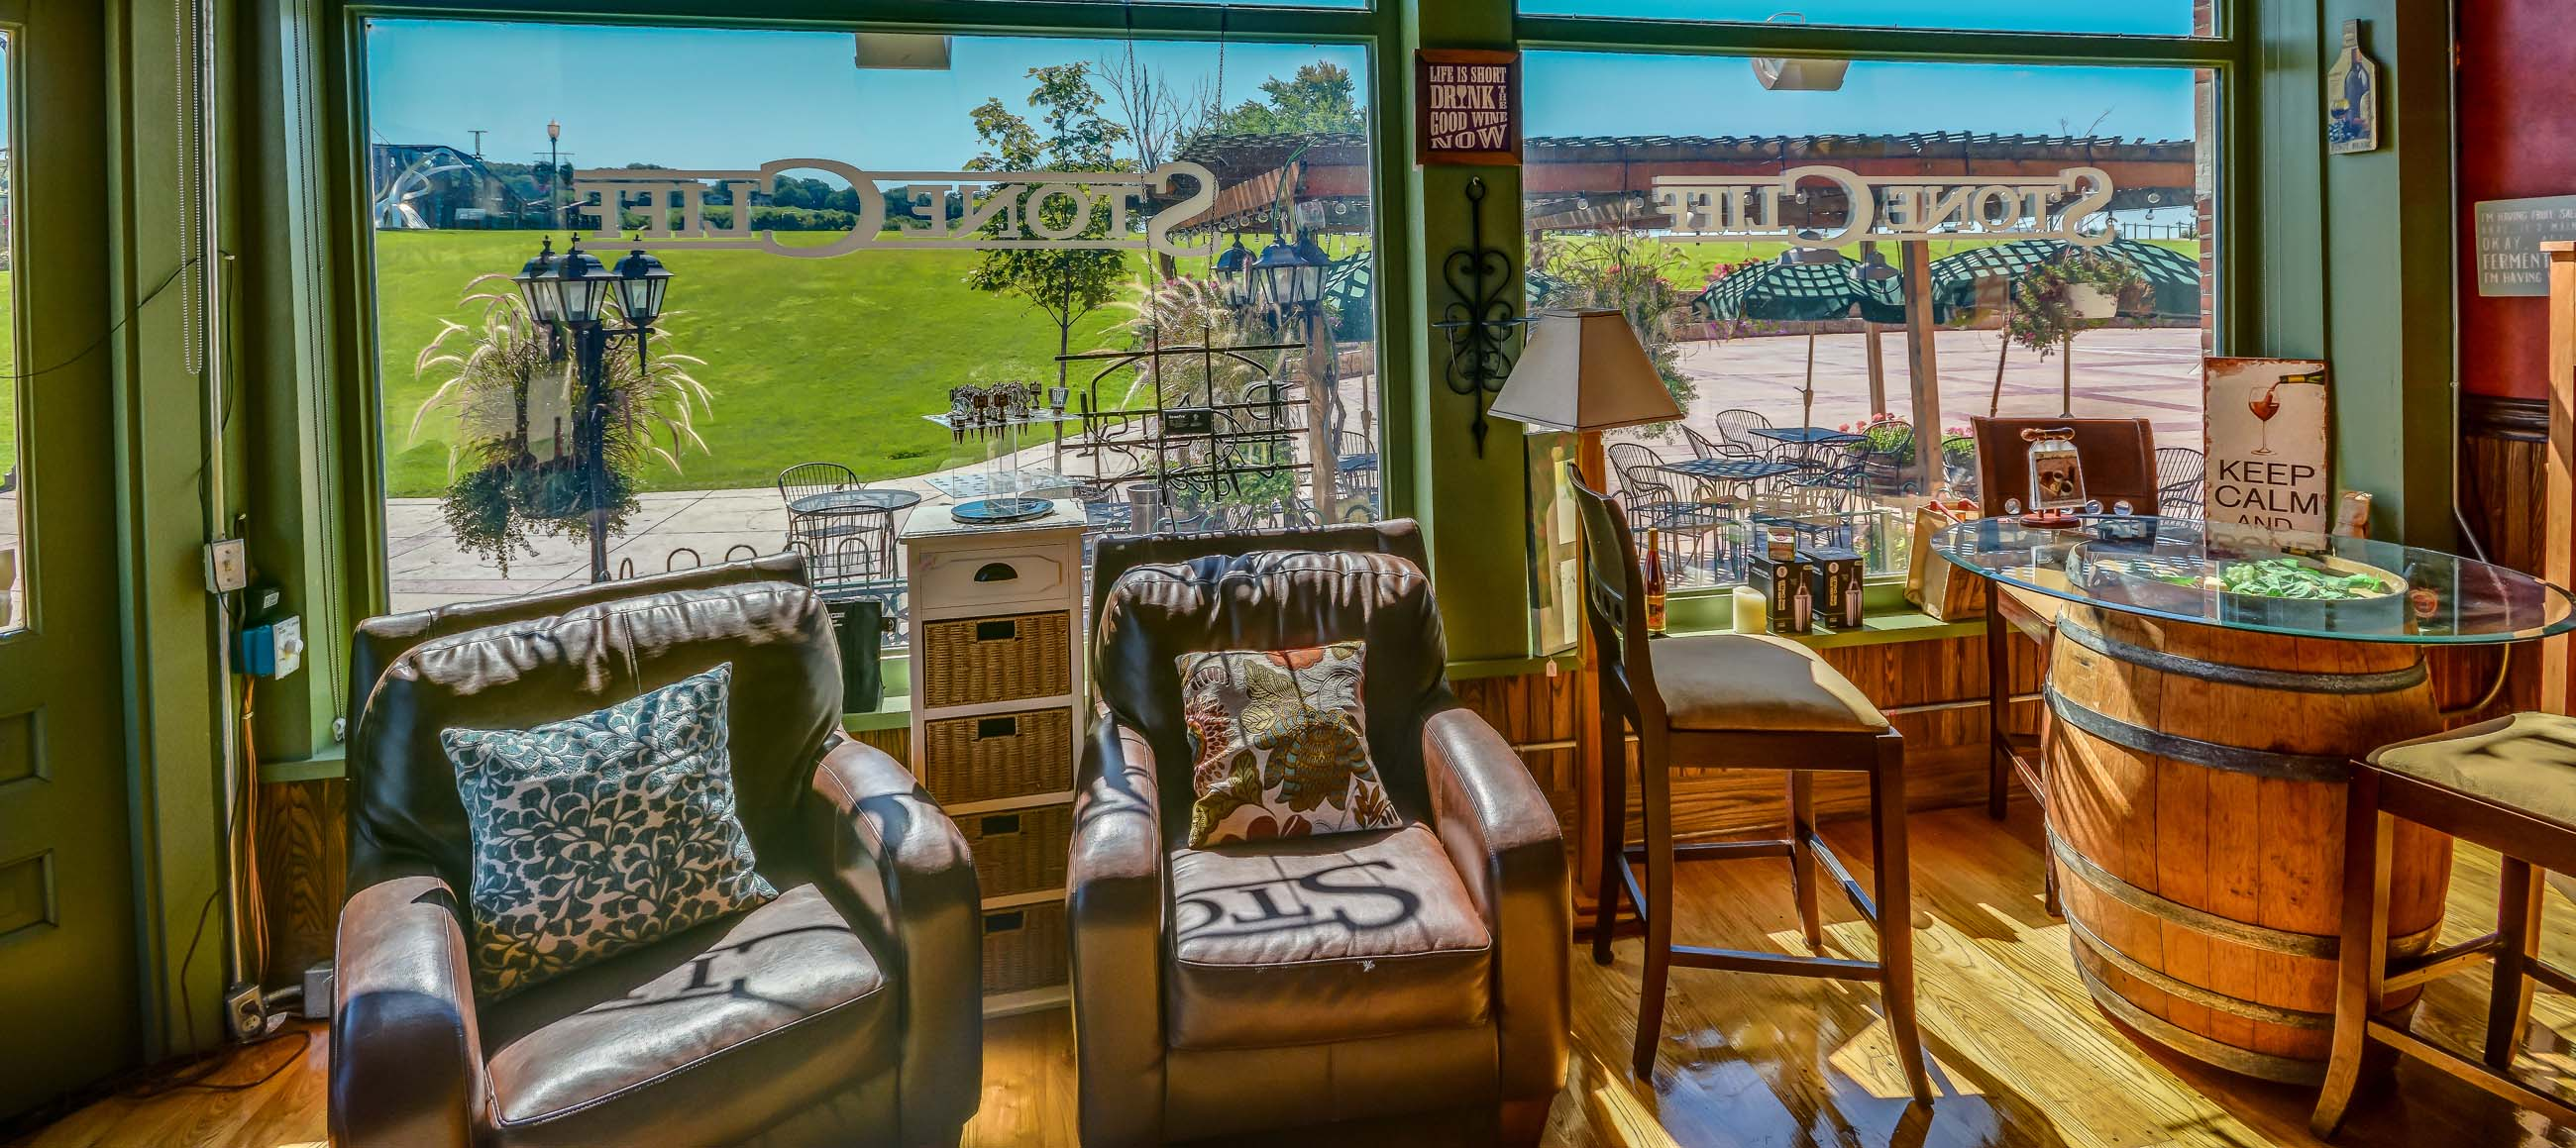 Stone Cliff Winery – Where grand wines and grand times are made daily